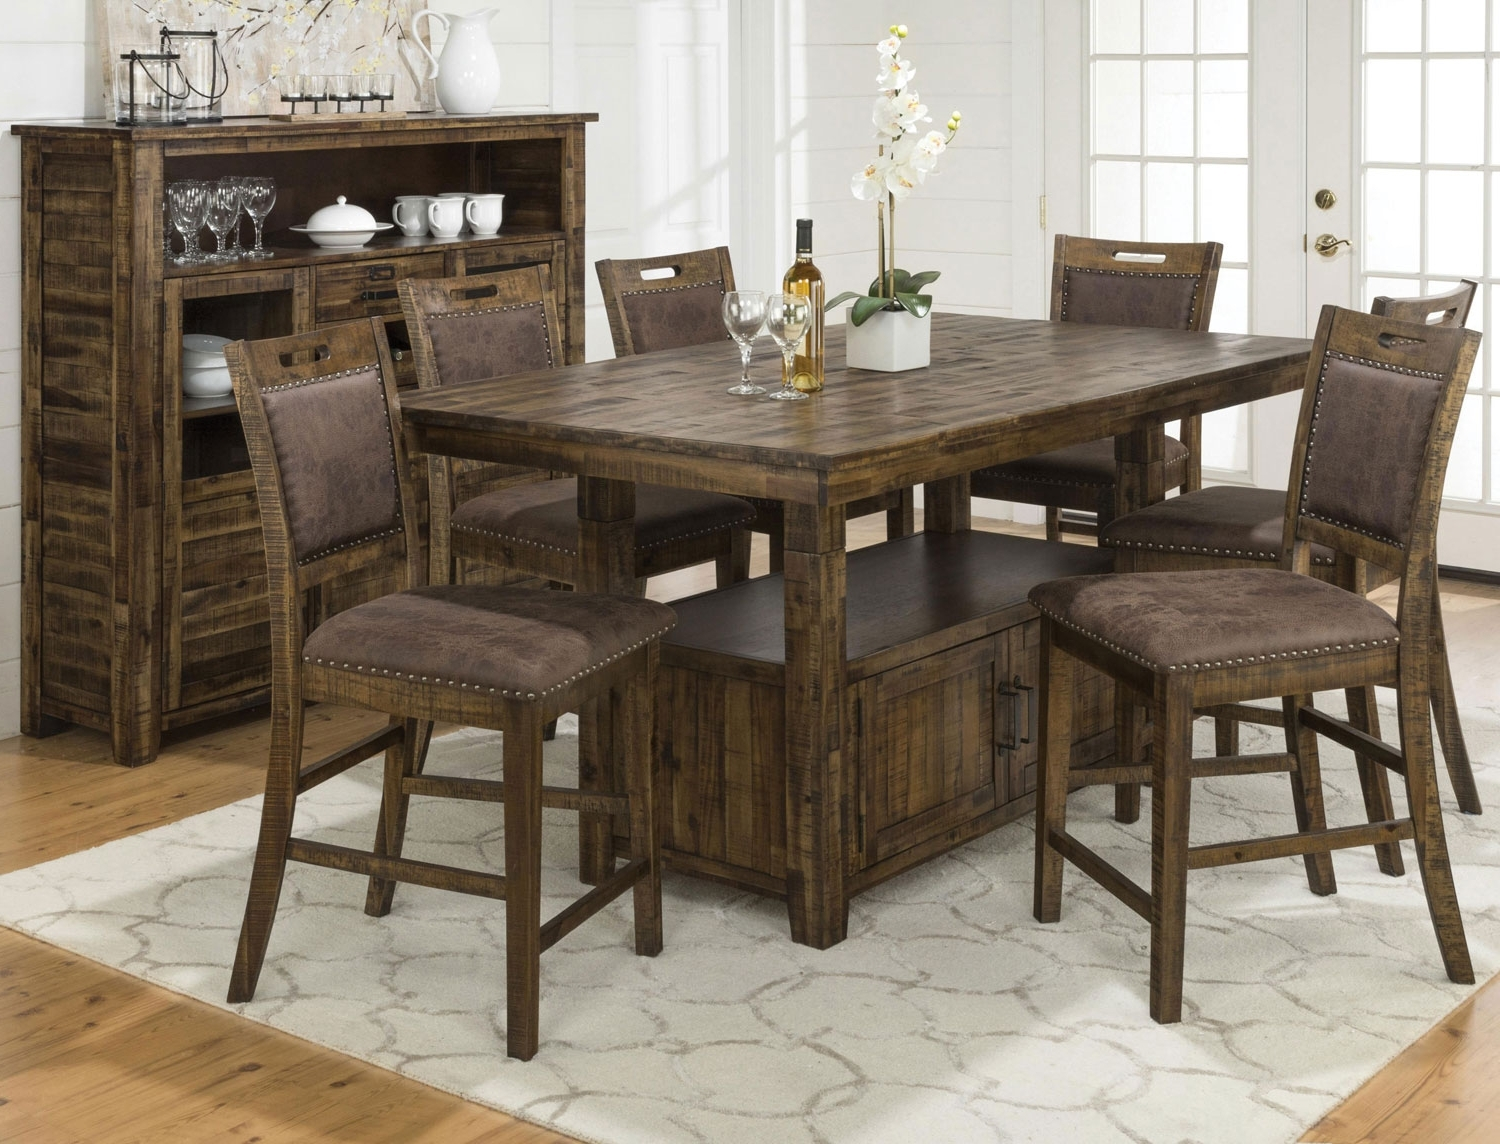 Widely Used Craftsman 7 Piece Rectangle Extension Dining Sets With Arm & Side Chairs Intended For Dining Room (View 21 of 25)